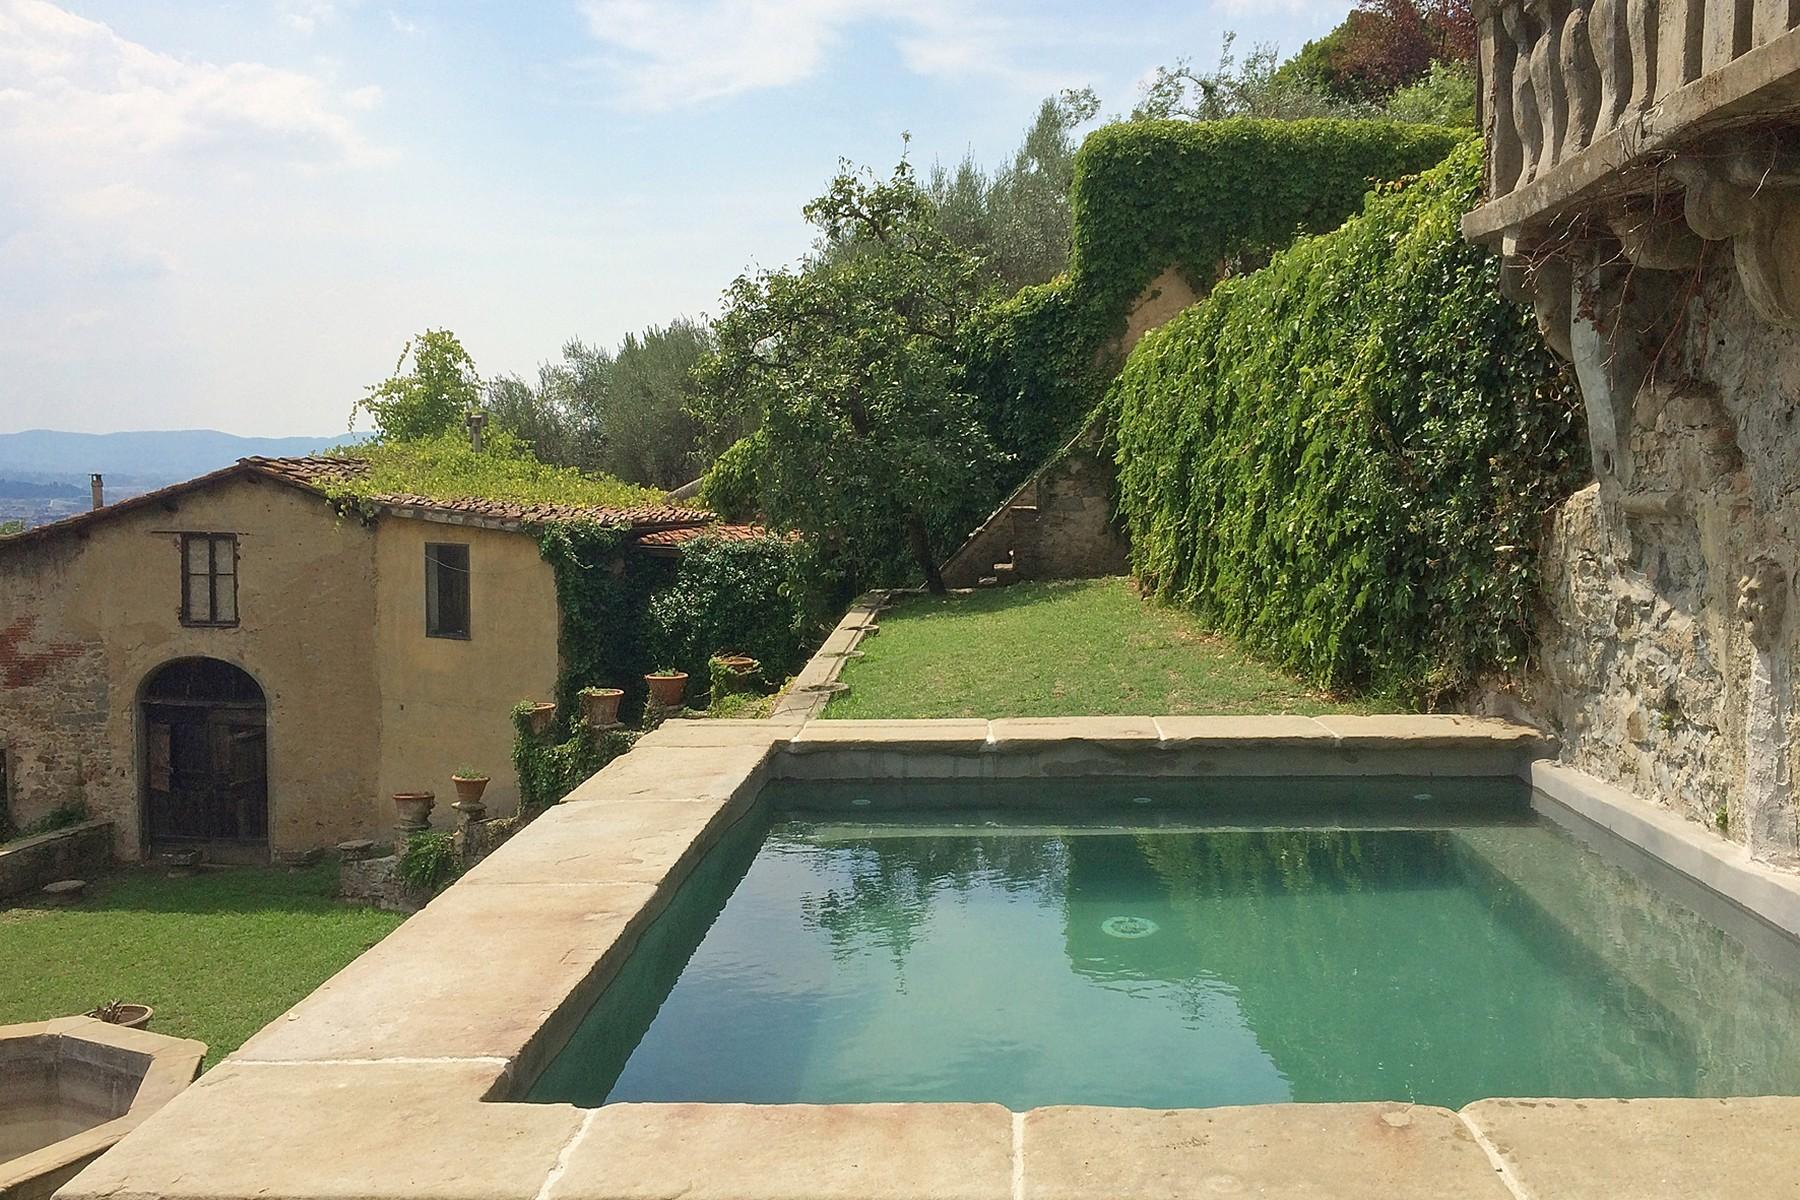 Marvellous villa with pool on the hills of Florence - 19